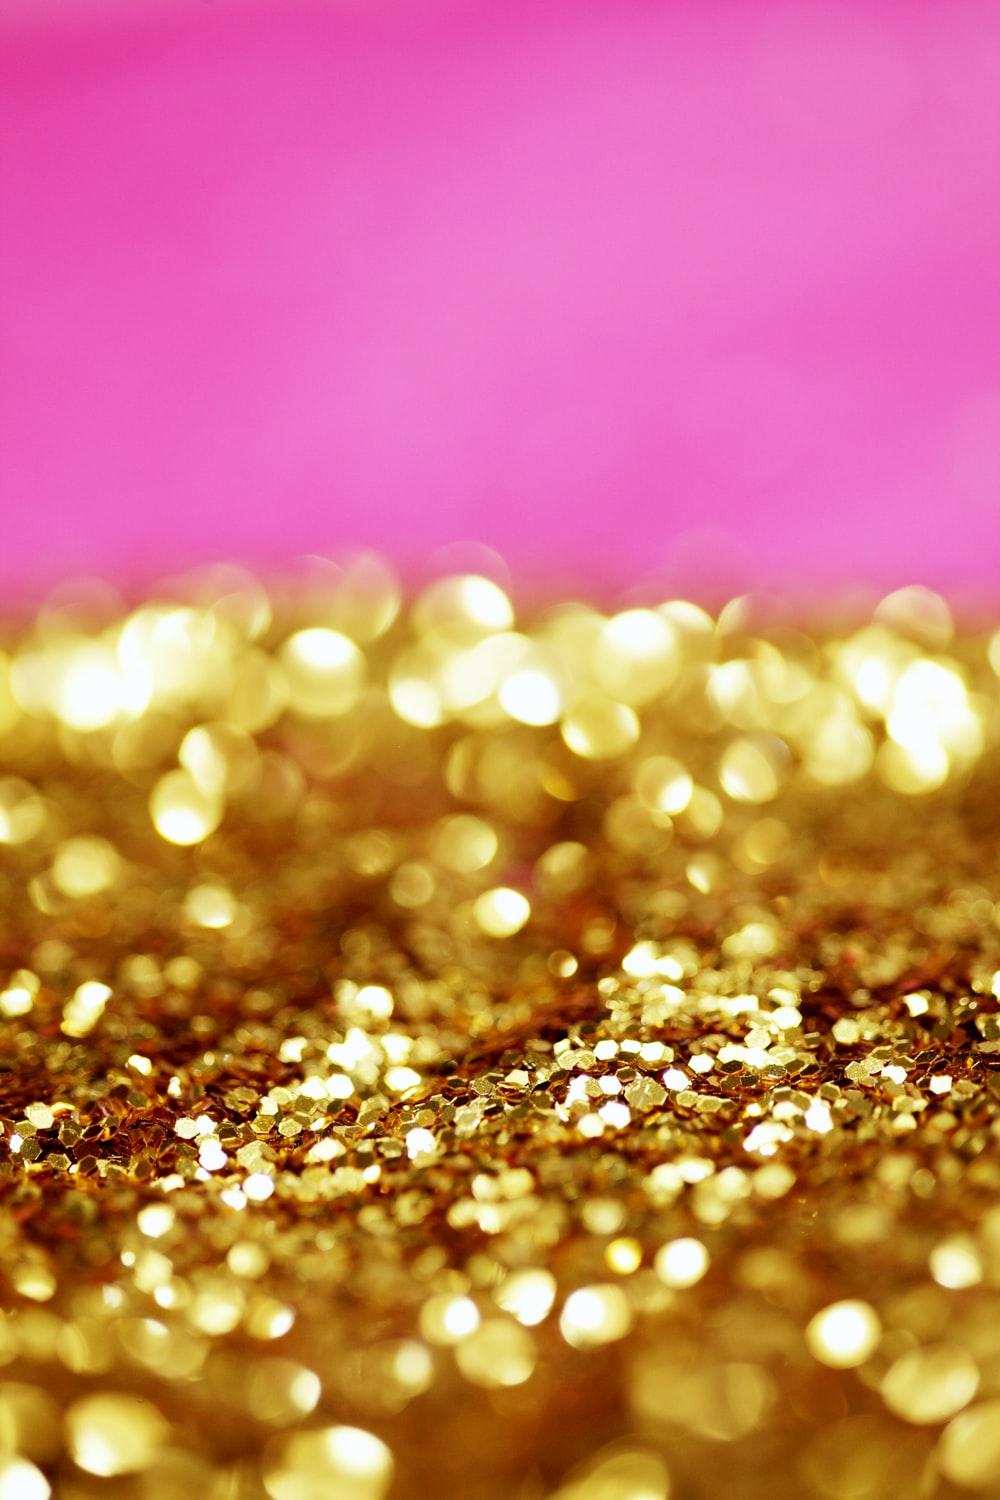 27 Glitter Pictures Download Free Images On Unsplash